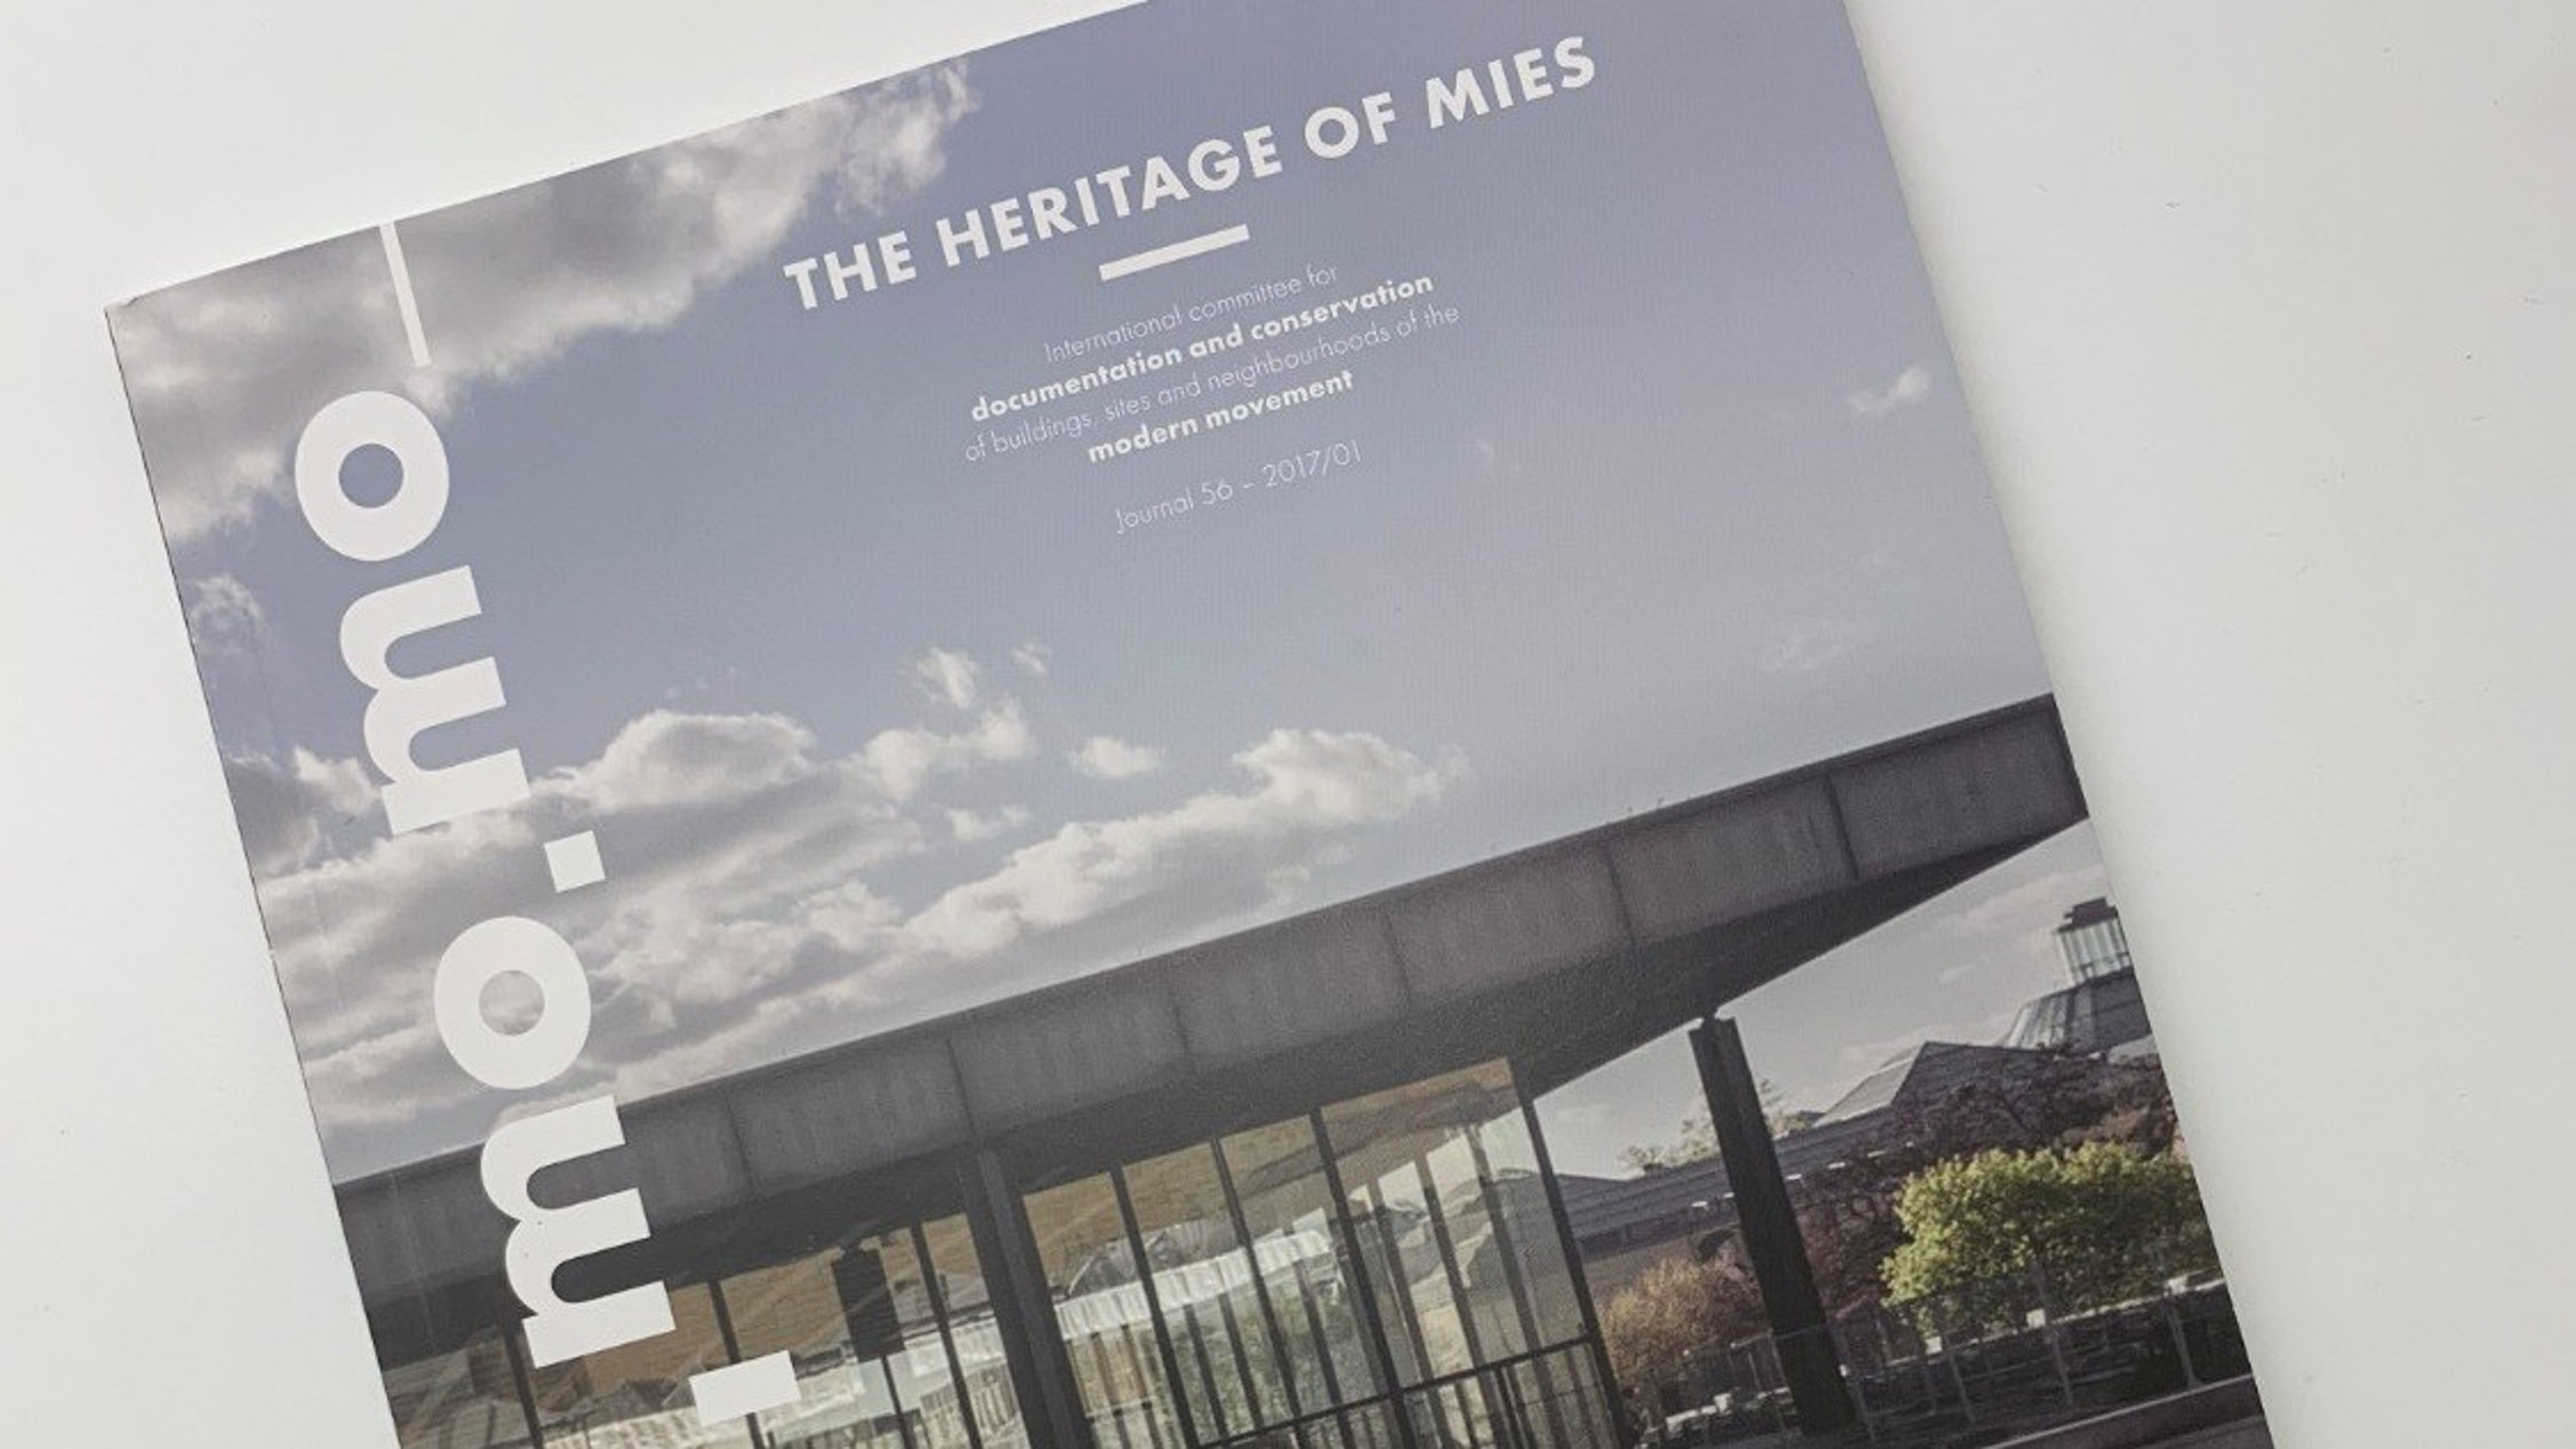 More copies of DOCOMOMO The Heritage of Mies in print Thumbnail